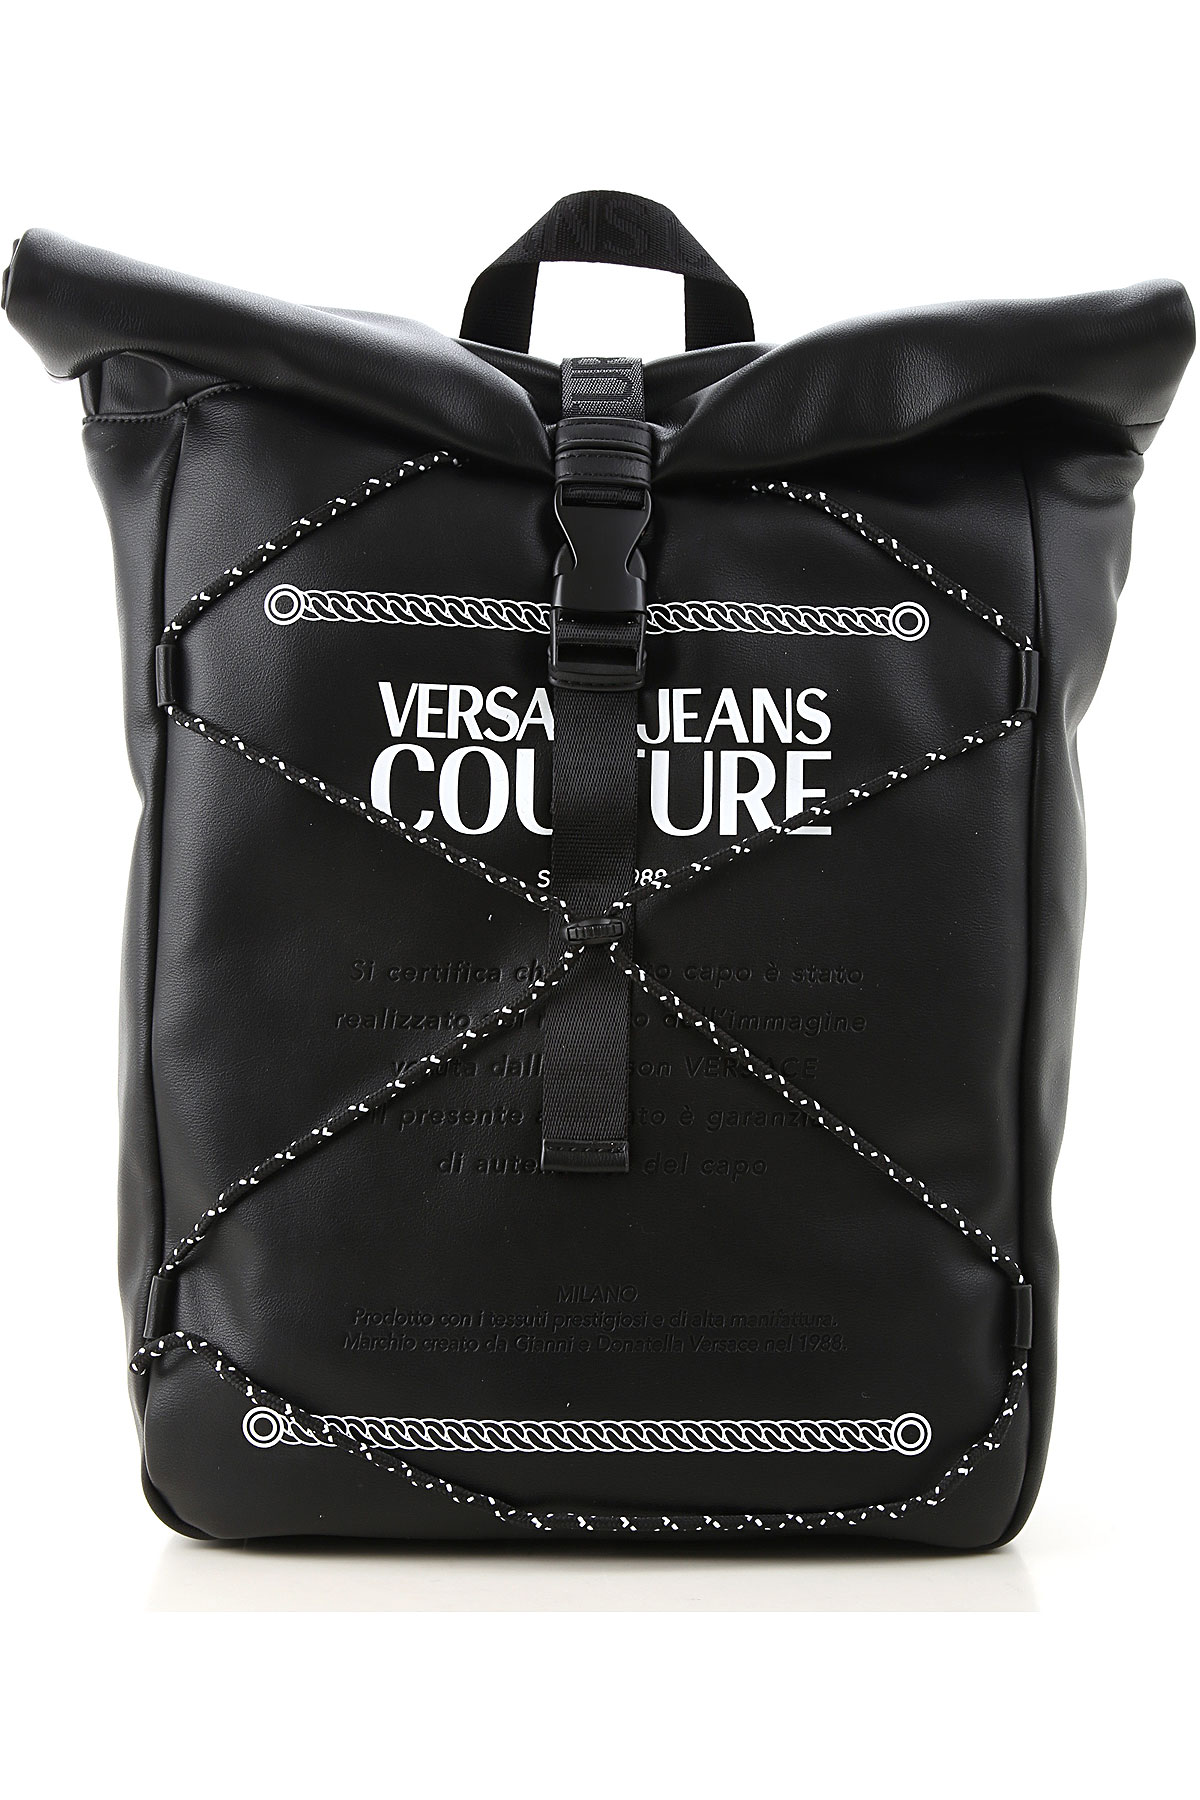 Versace Jeans Couture Briefcases On Sale, Black, polyester, 2019